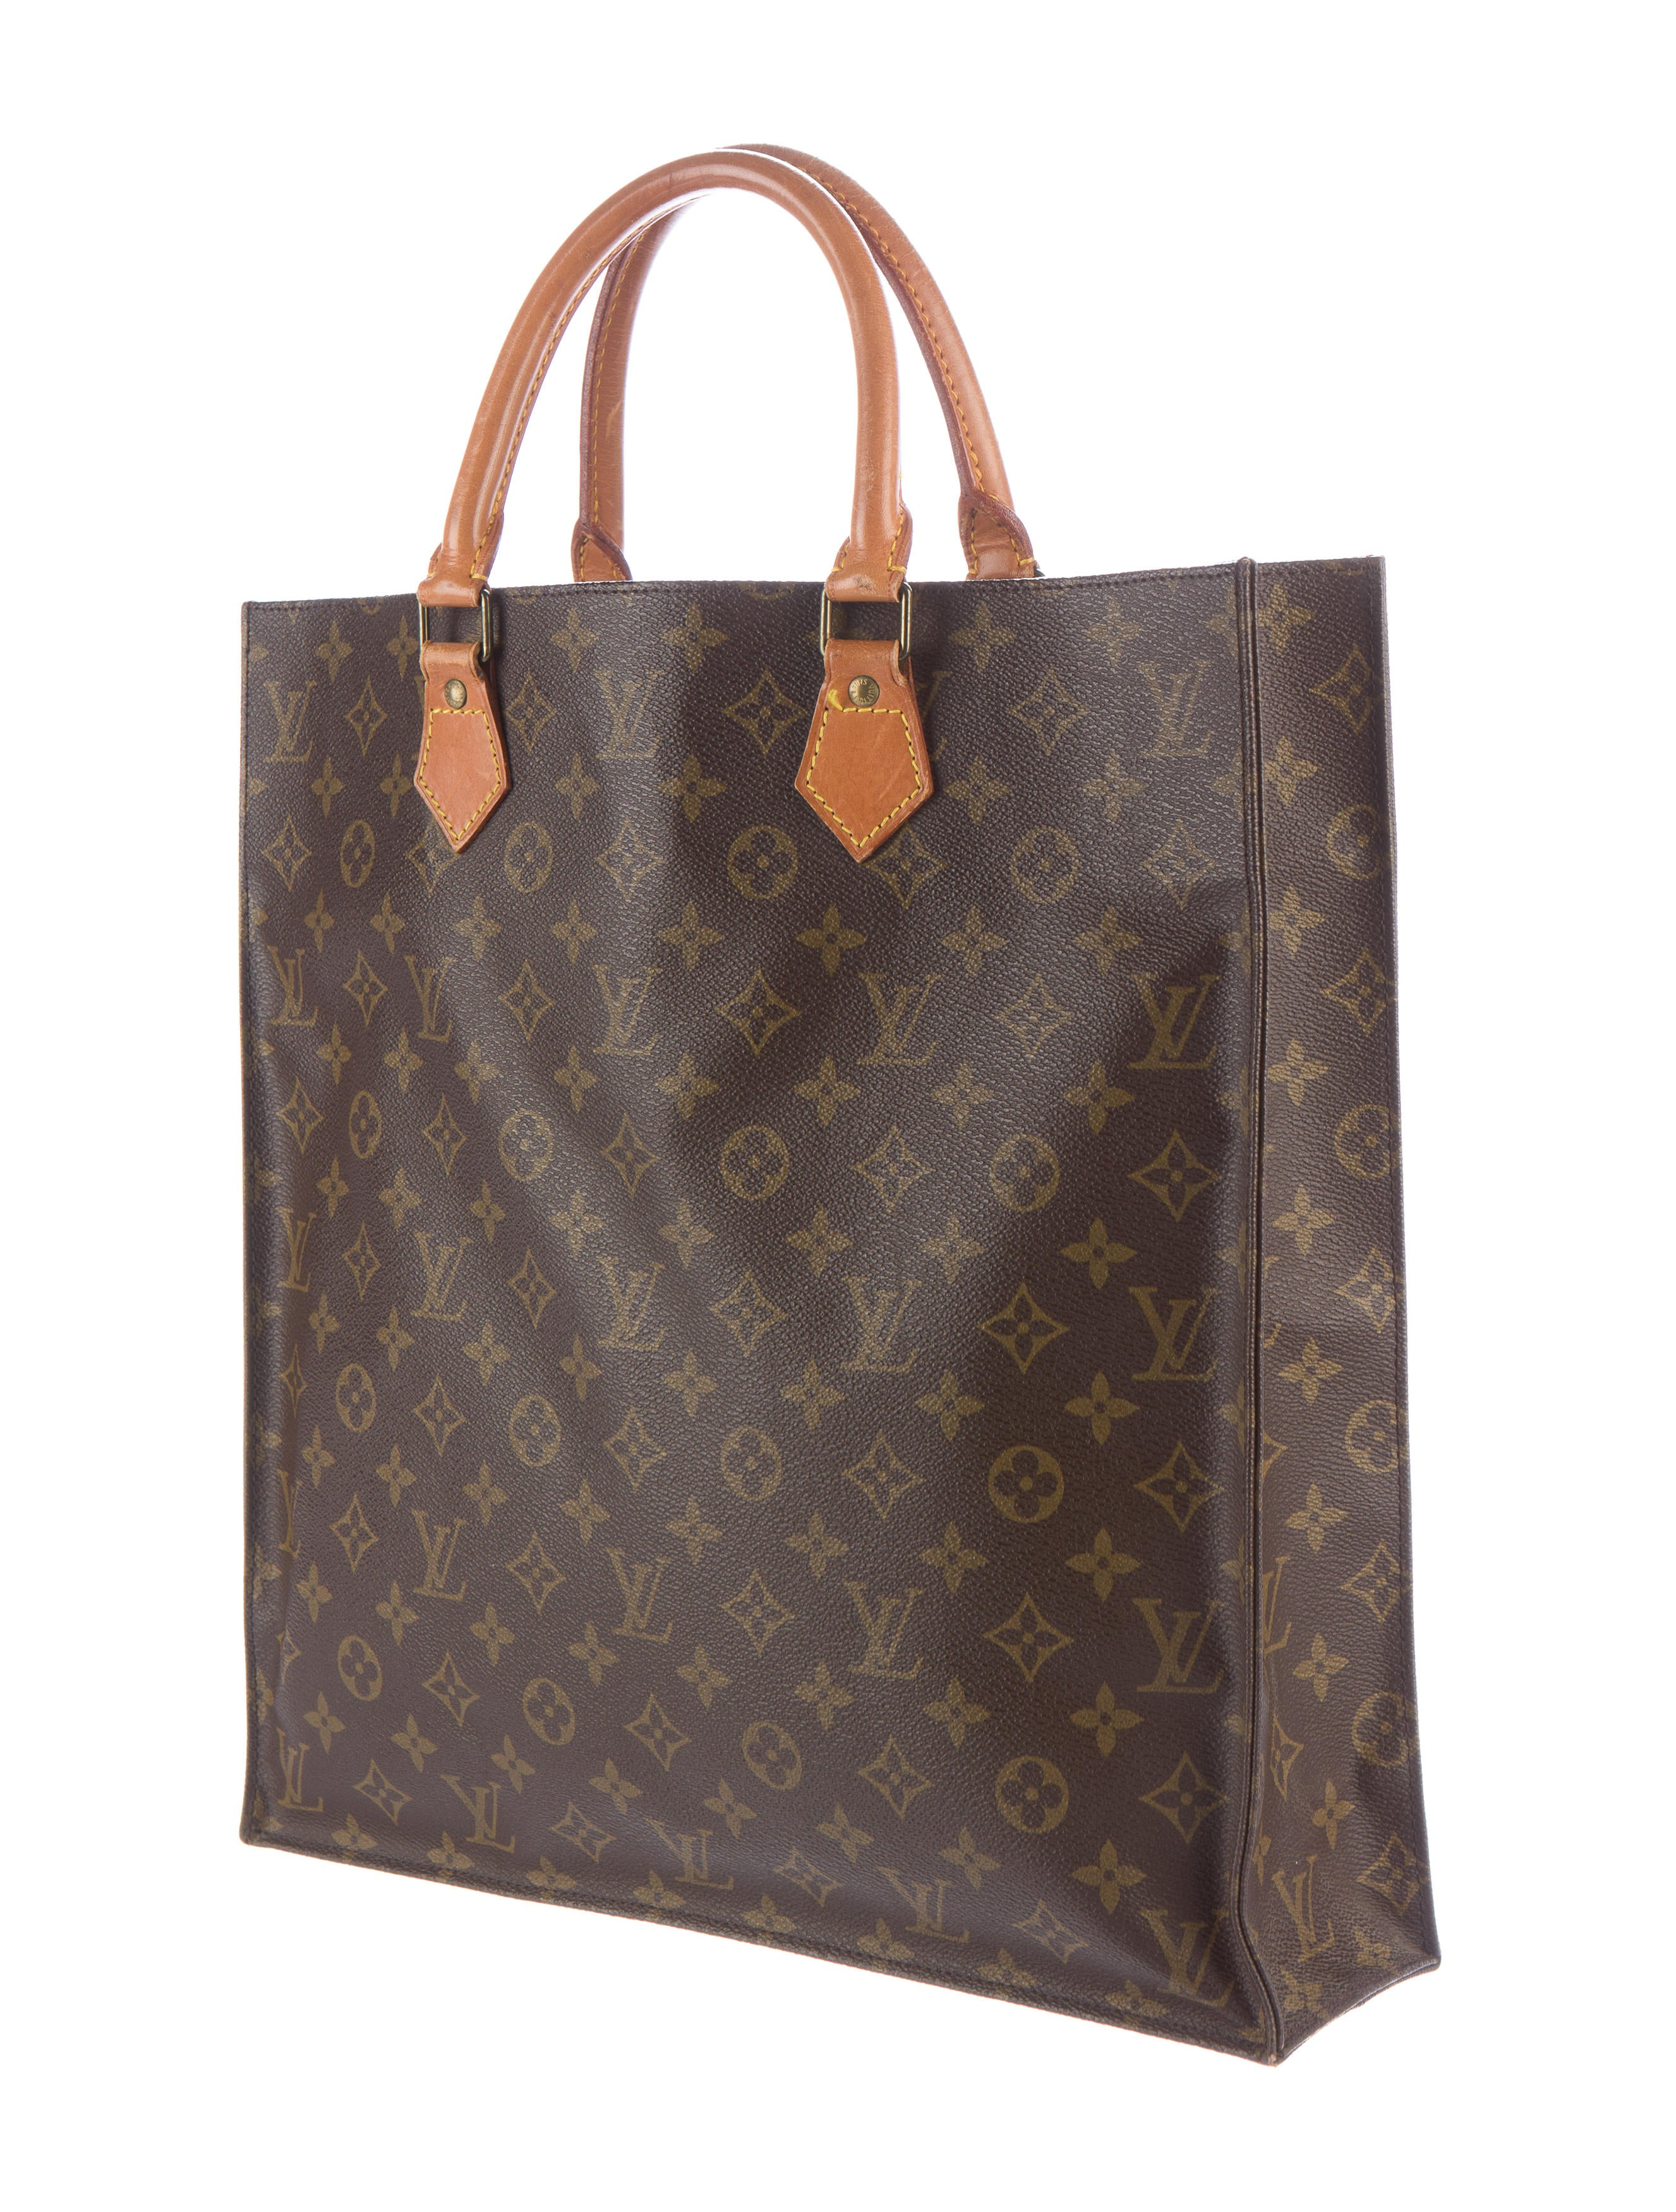 Louis vuitton monogram sac plat handbags lou109350 for Louis vuitton monogram miroir sac plat